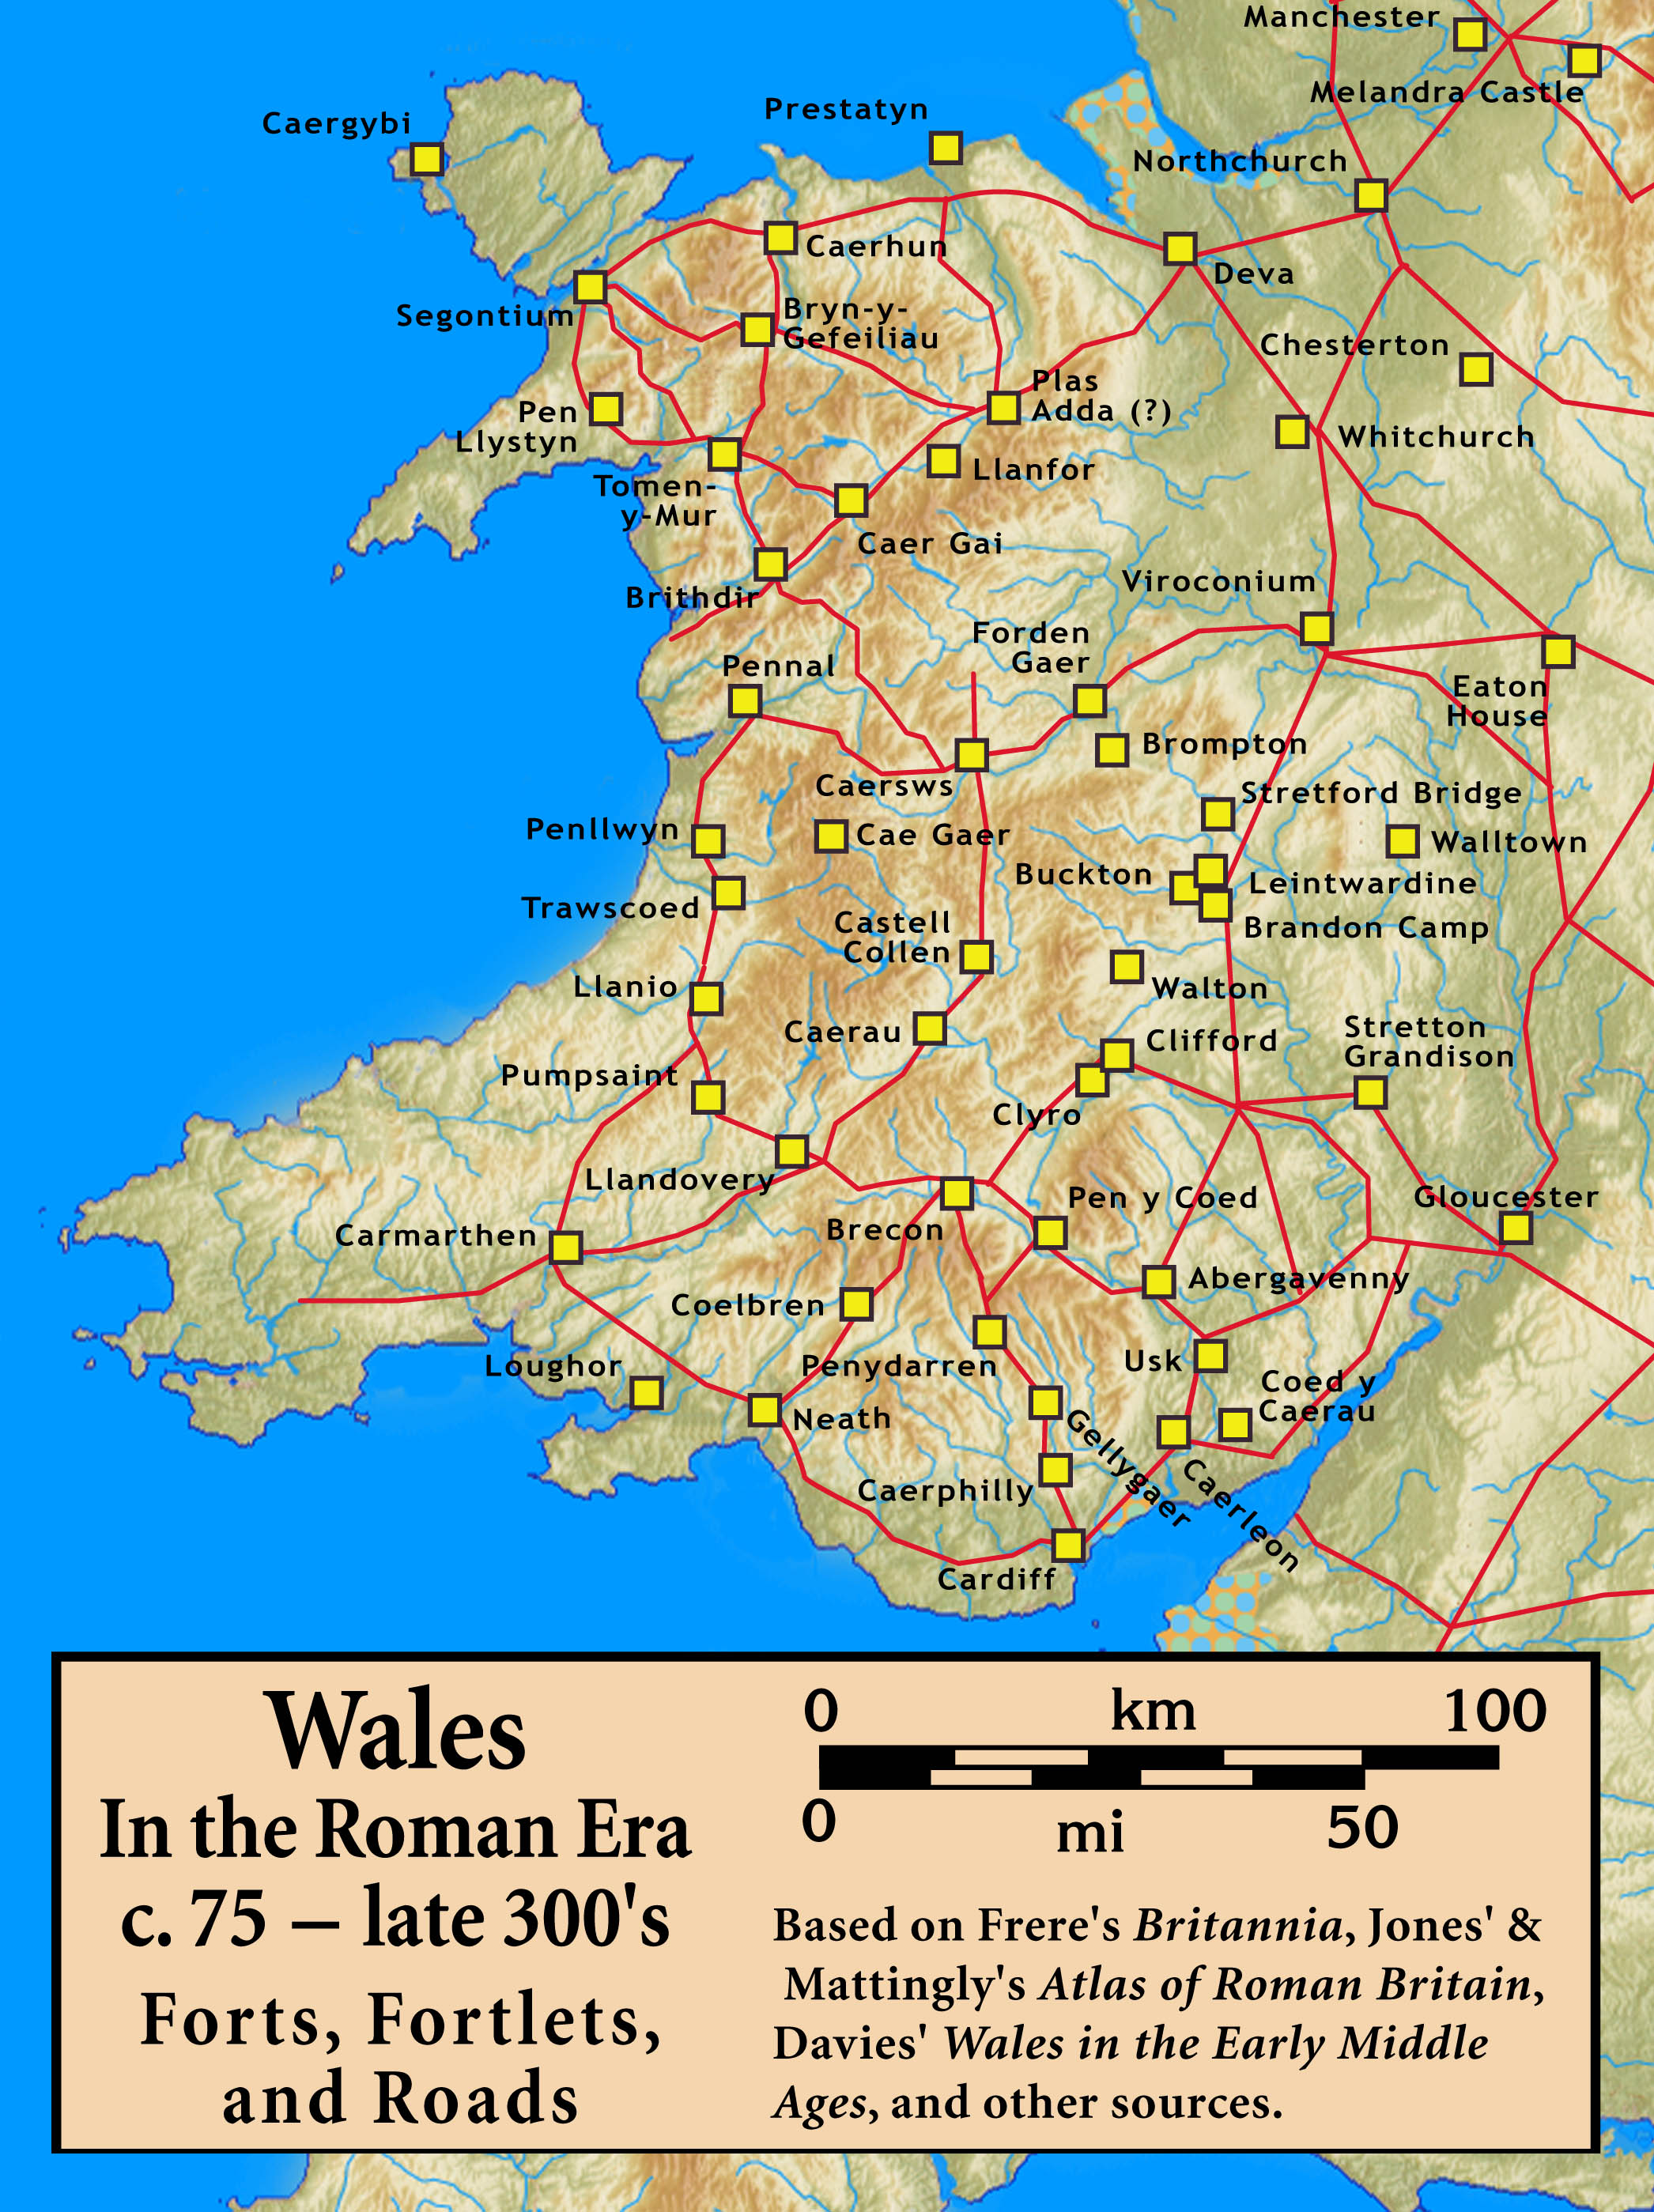 Map Of Wales Wales In The Roman Era Worldofmaps Net Online